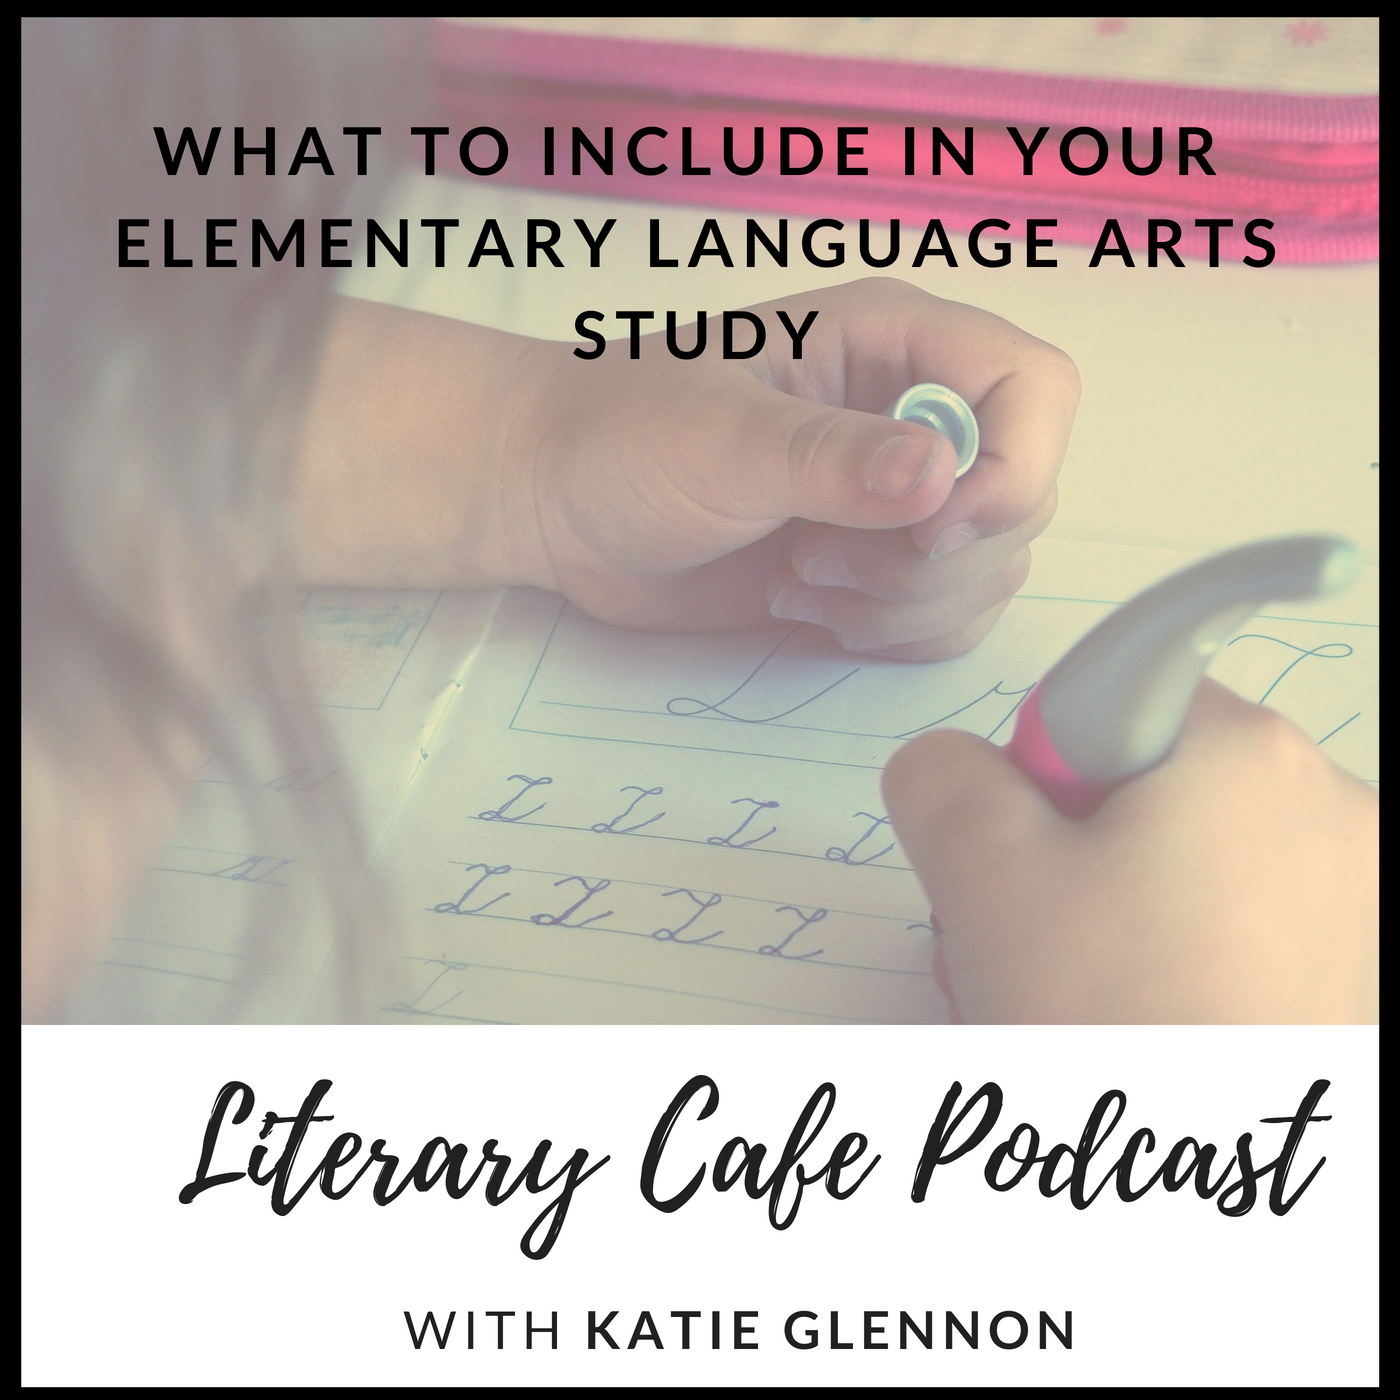 Join Katie at the Literary Cafe Podcast to learn about What to Include in your Elementary Language Arts Study #homeschool #homeschooling #language arts #elementary school